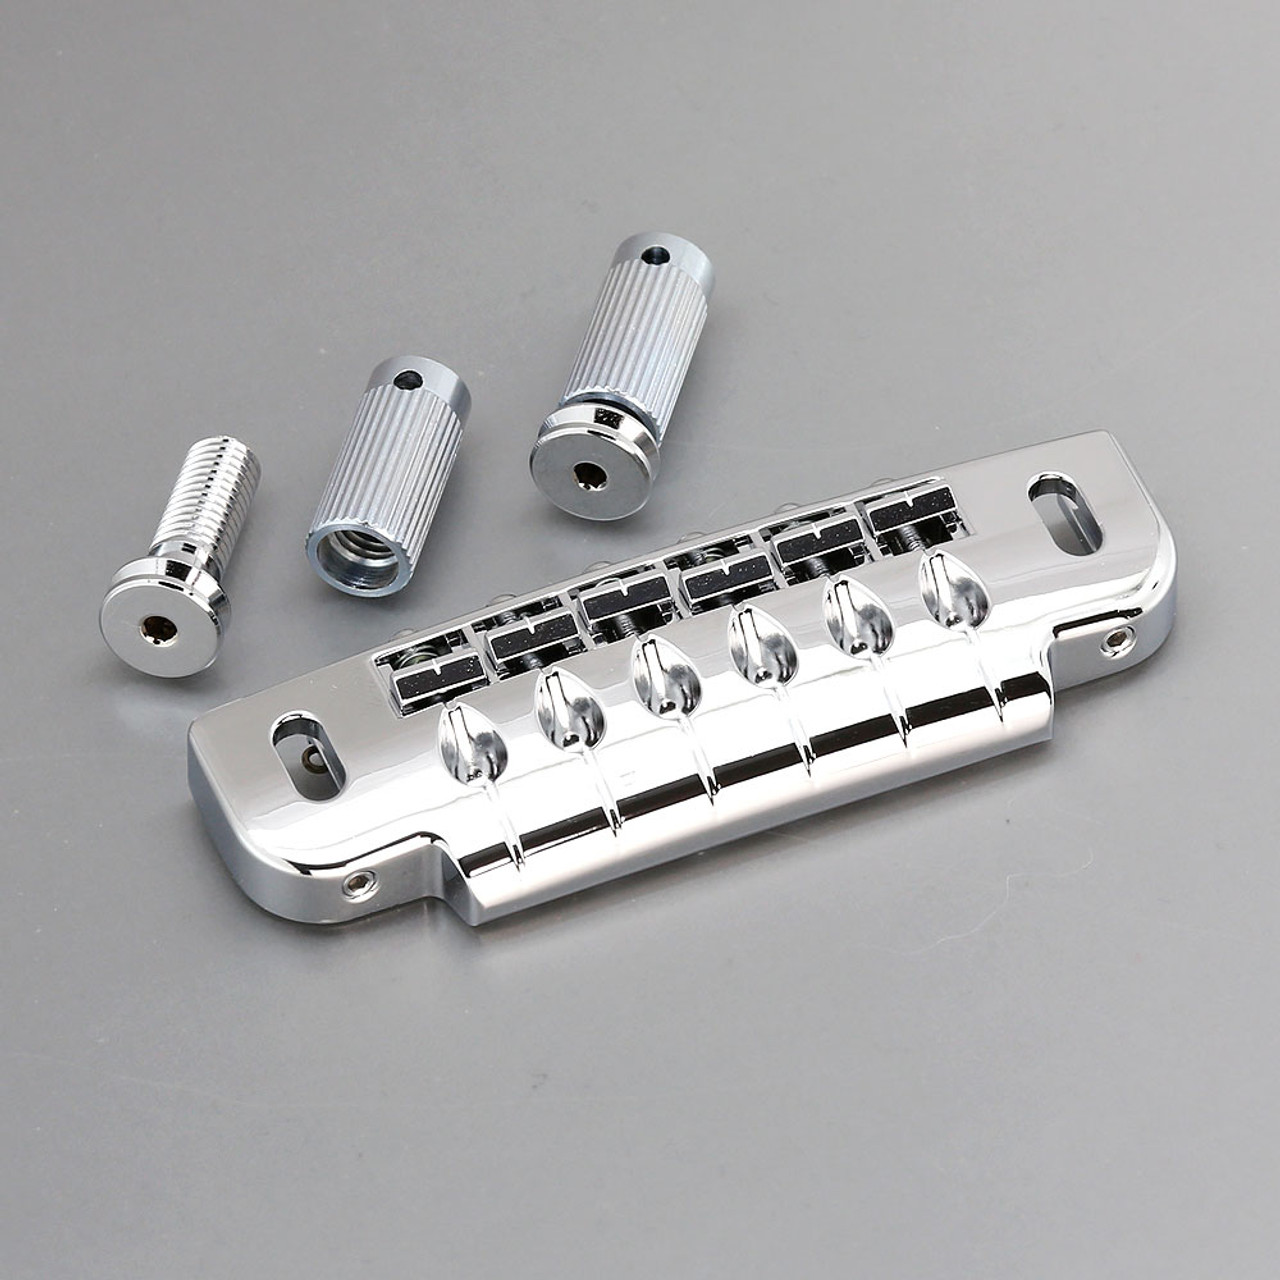 Gotoh 510UB - Wraparound Bridge (choose finish)